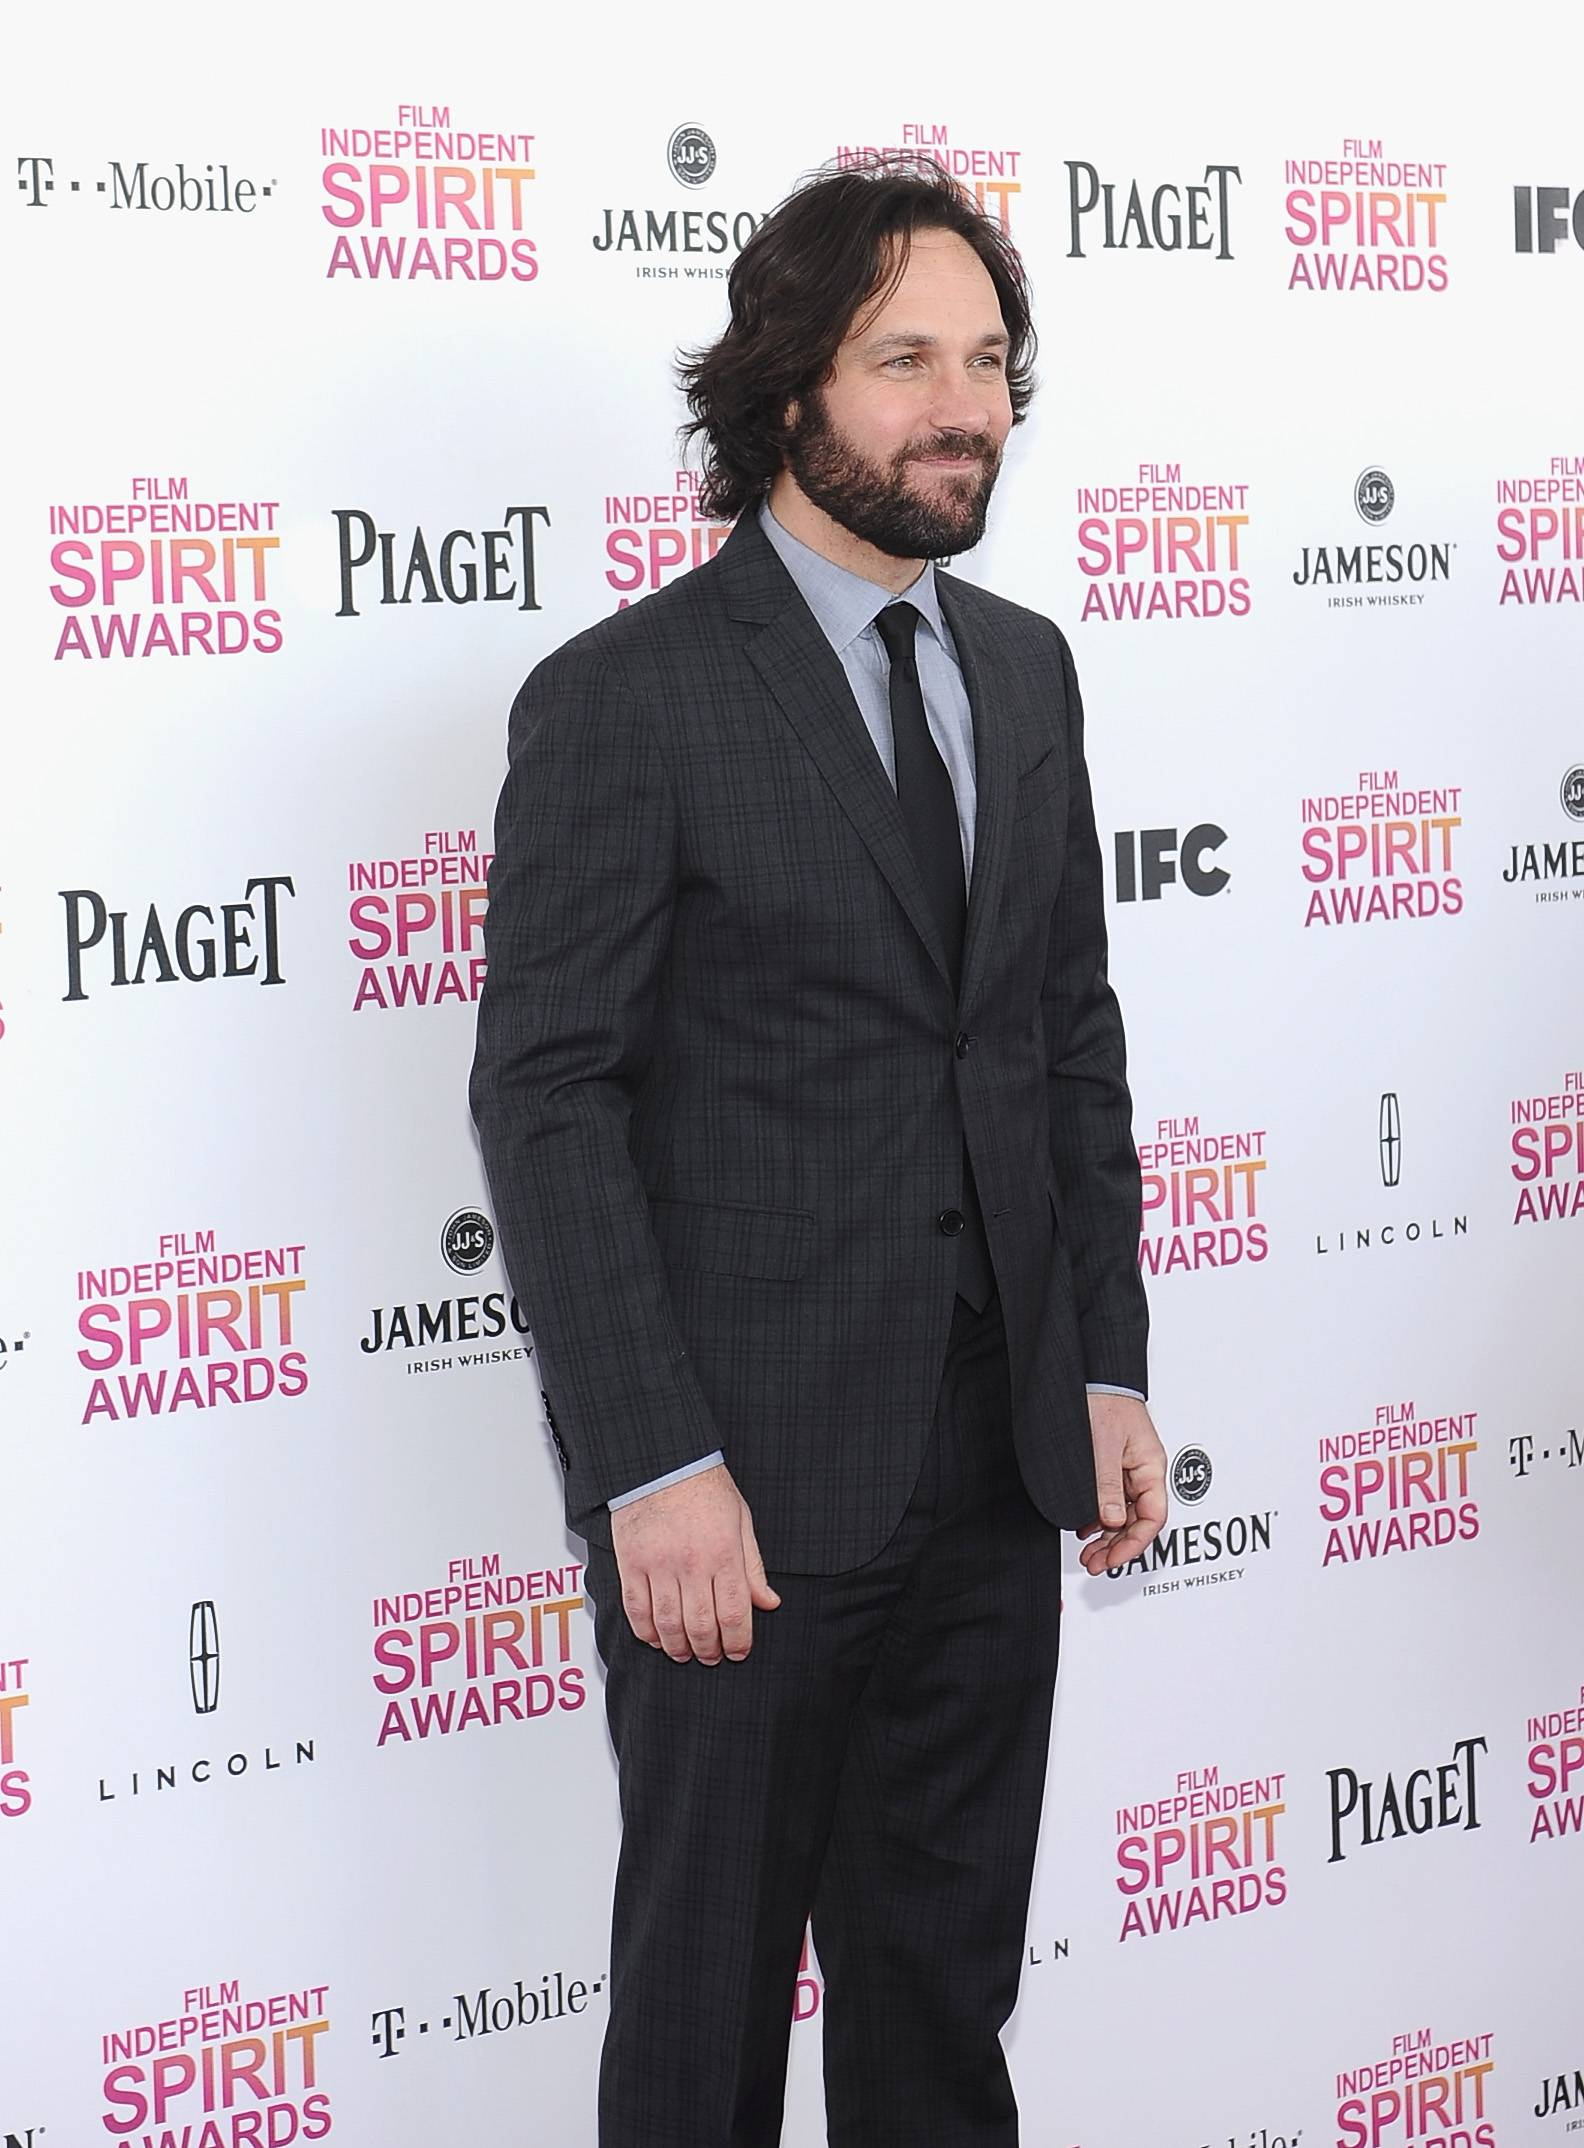 Piaget At The 2013 Film Independent Spirit Awards